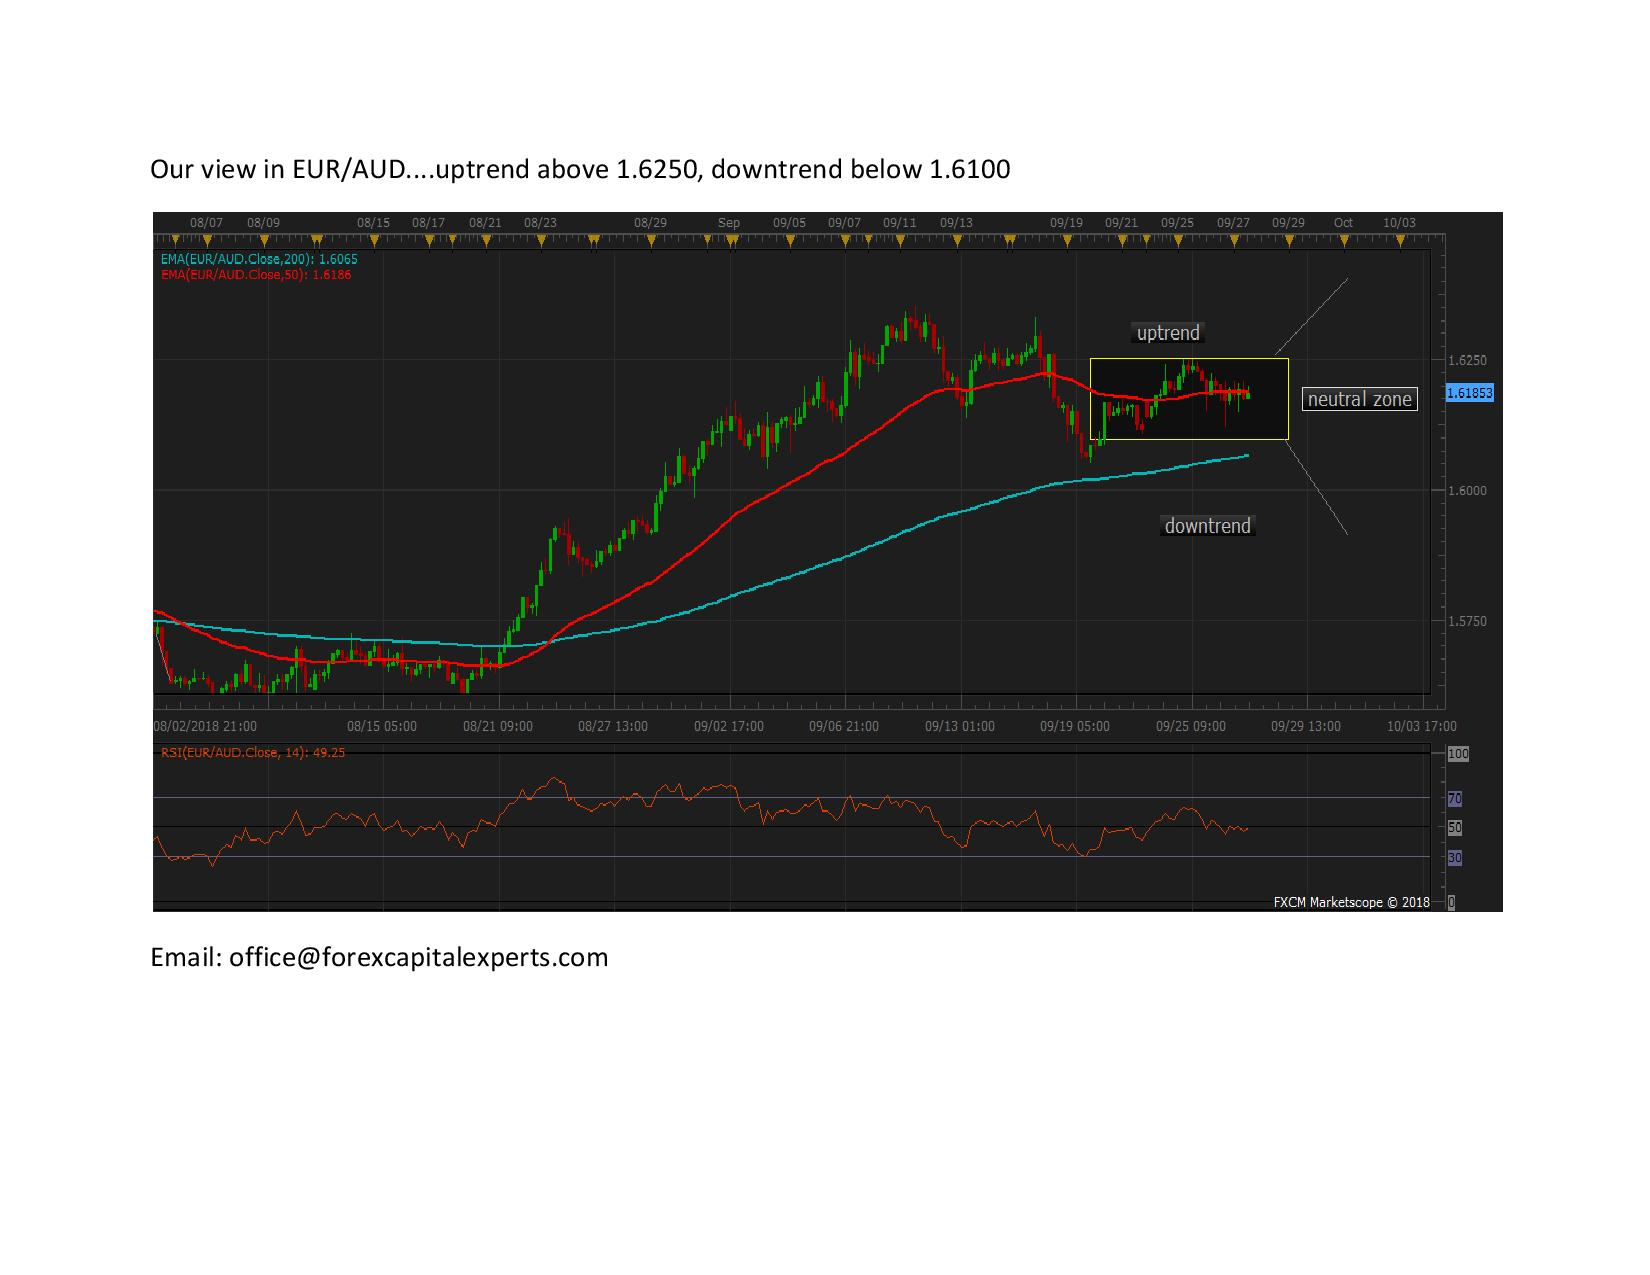 Our view in EURAUD page 001